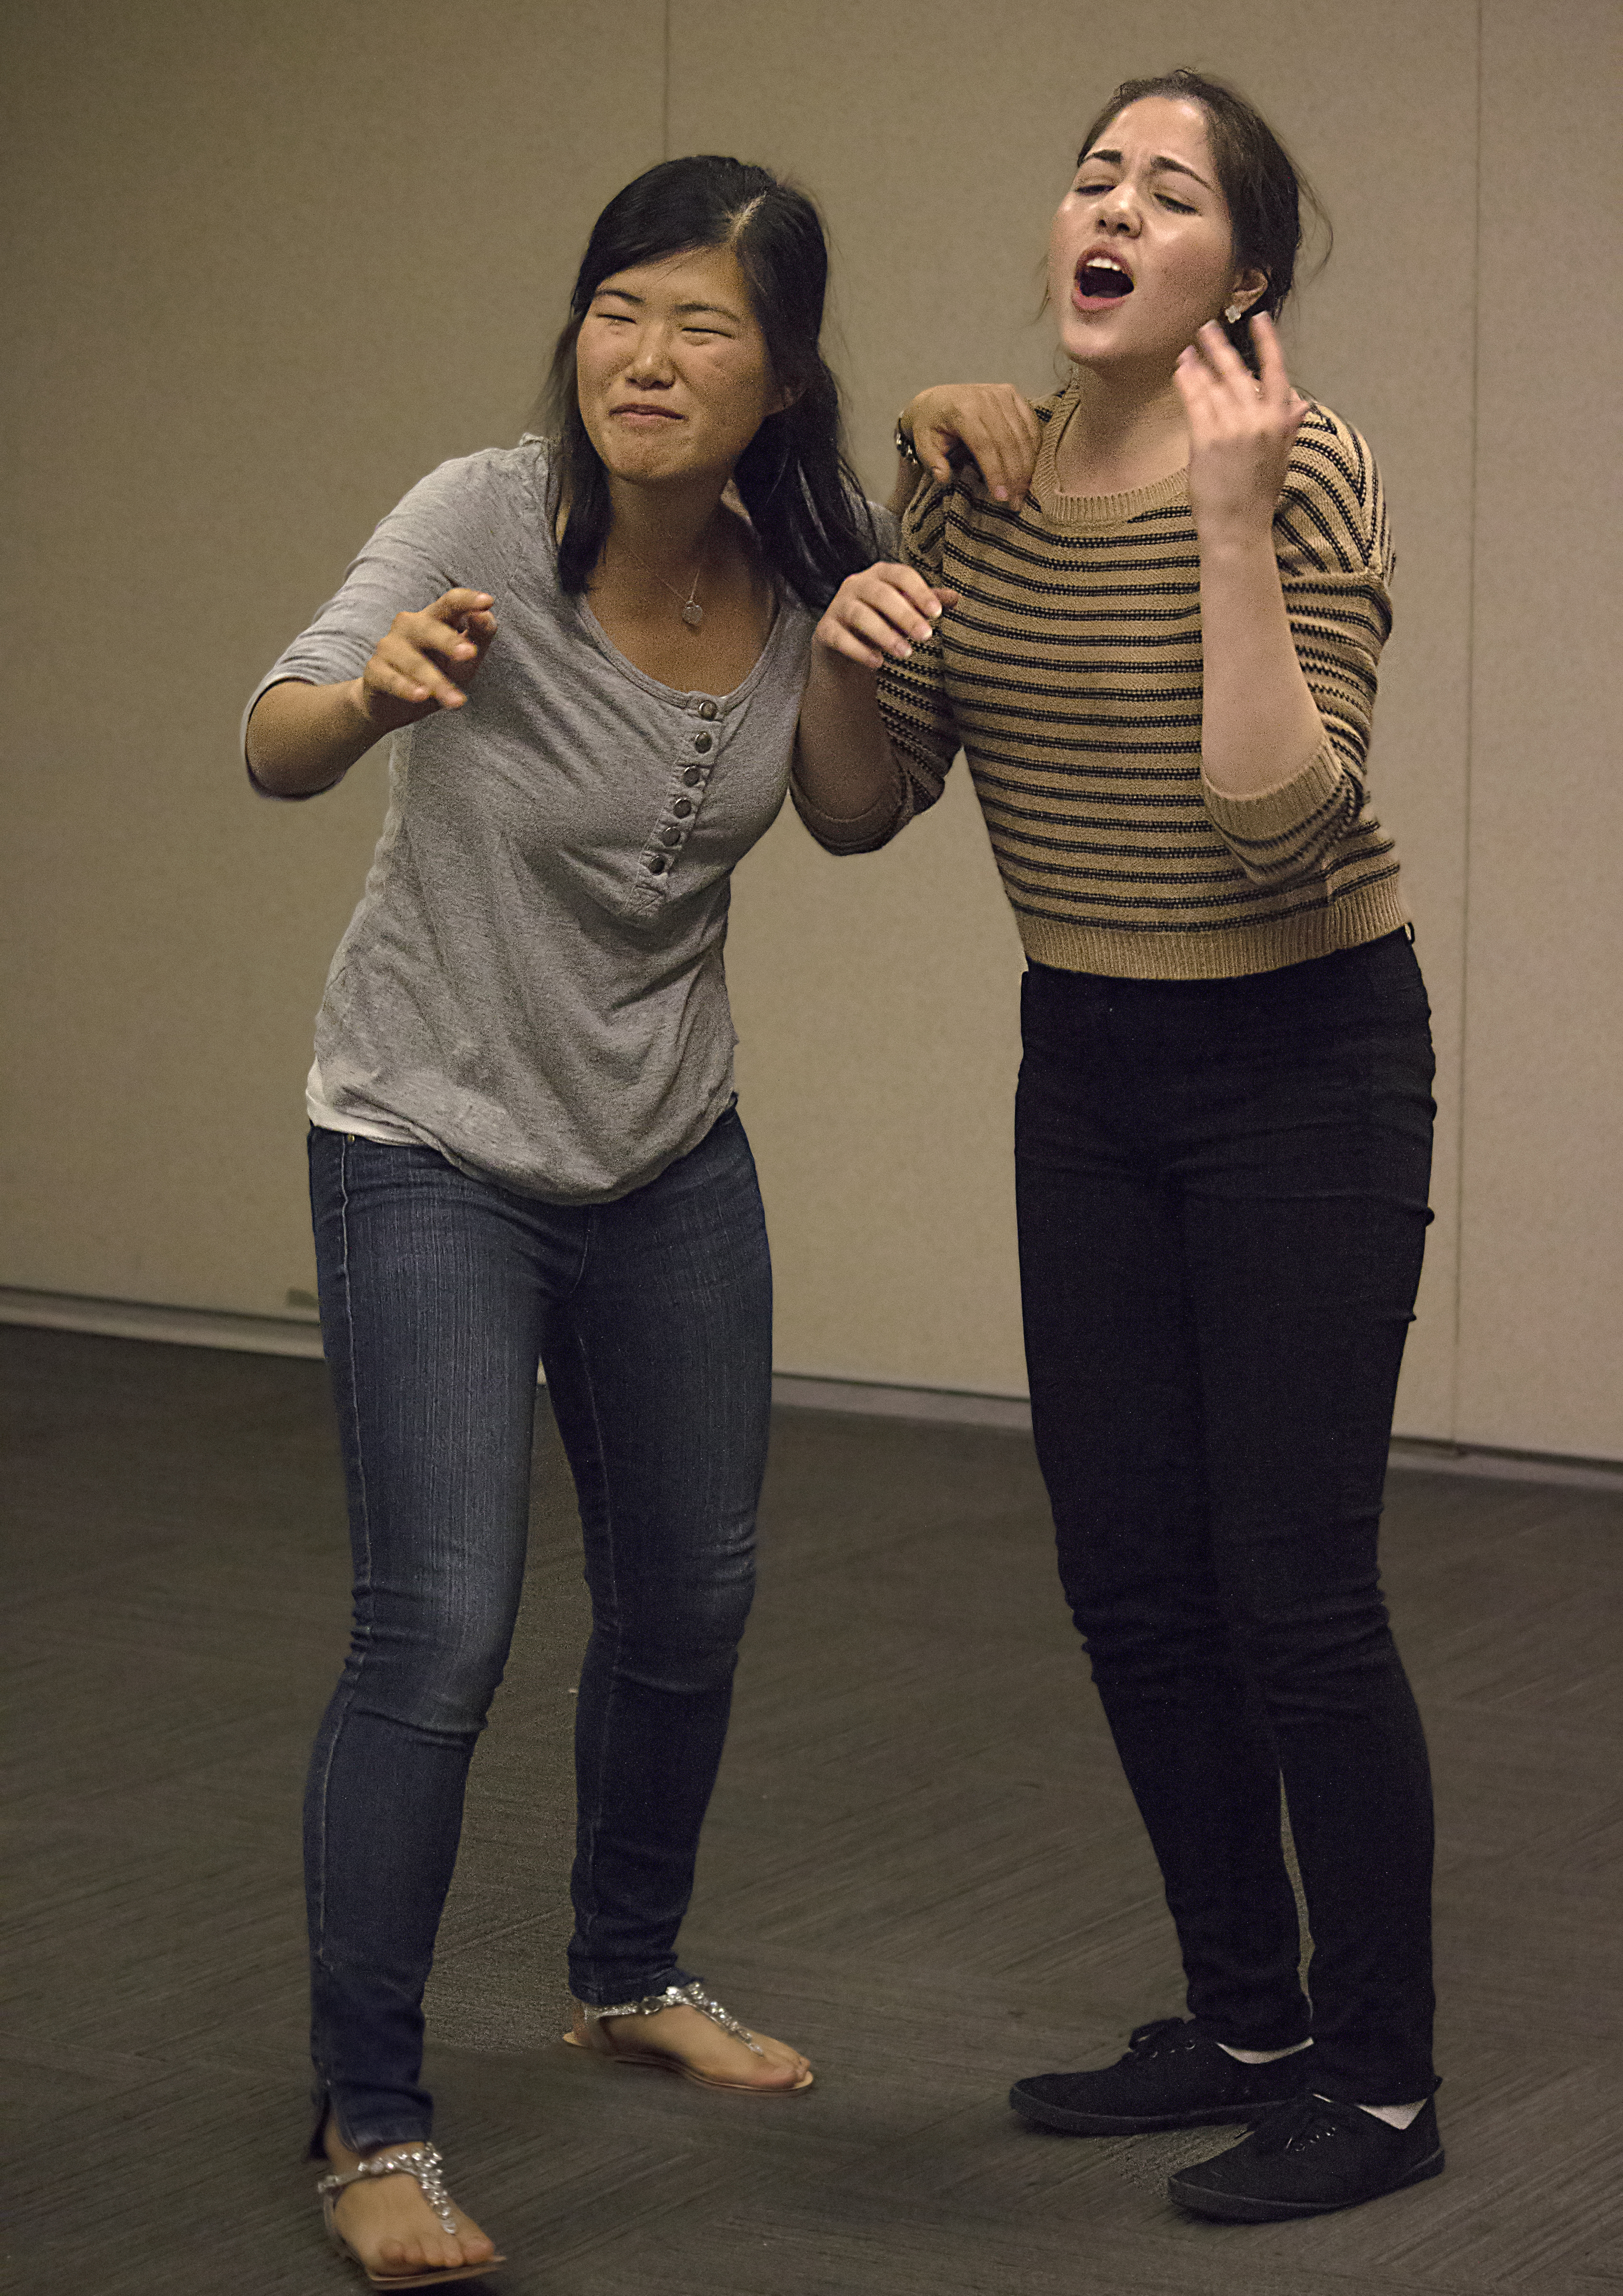 Fourth-year microbiology, immunology and molecular genetics student Grace Lau and fourth-year political science student Yalda Mostajeran practice improv as members of the LCC Theatre Company.